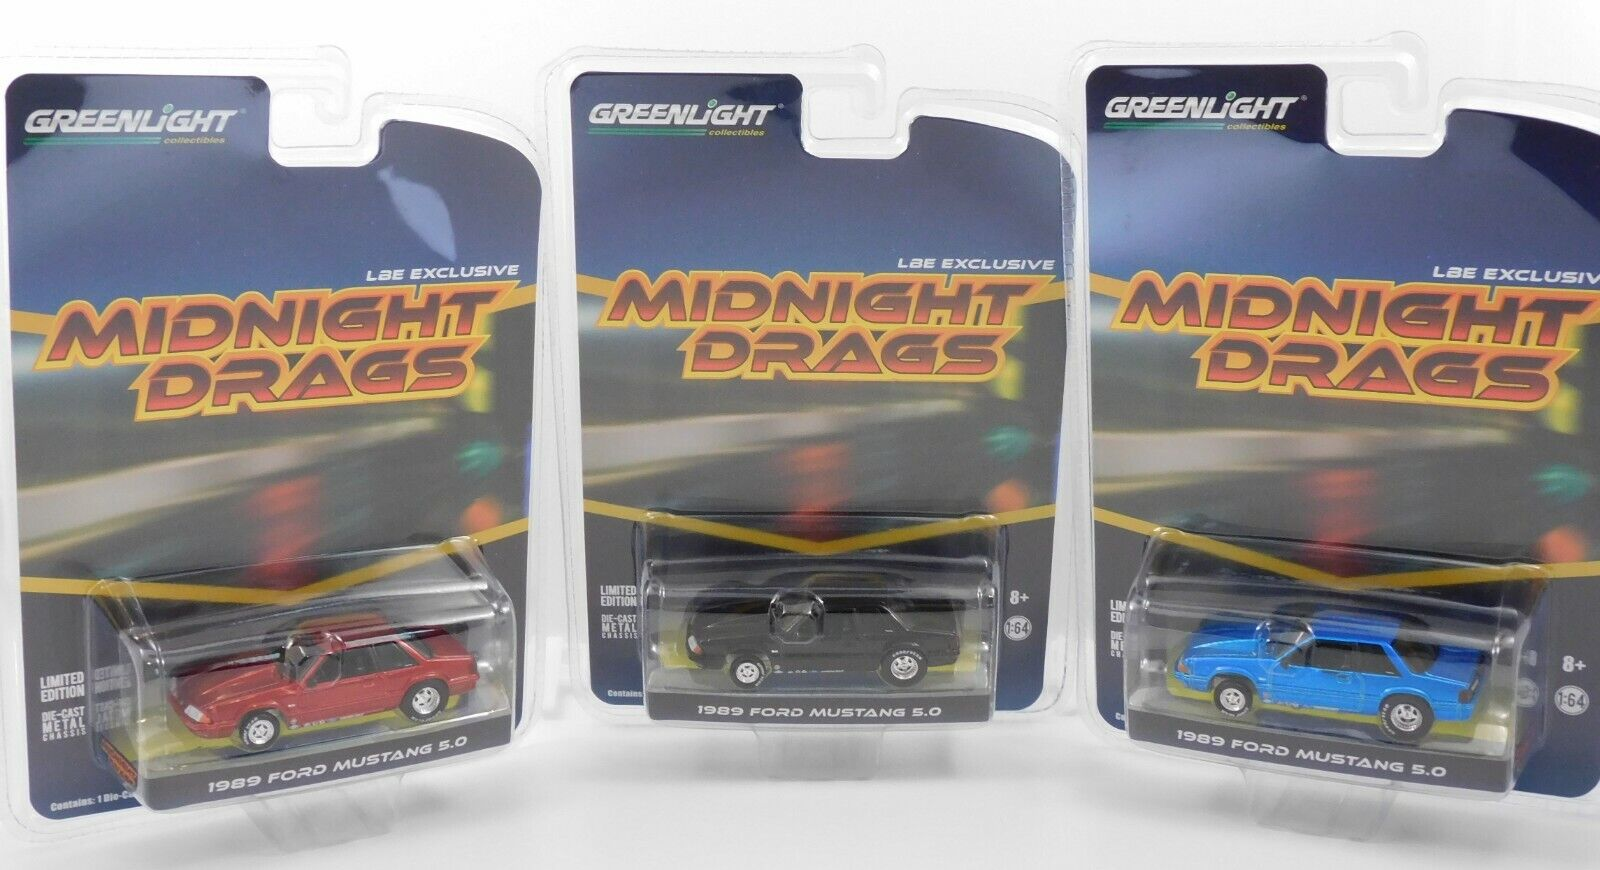 2019 Greenlight 1989 FORD MUSTANG LX 5.0 LBE Exclusive Midnight Drags 3 Car Set